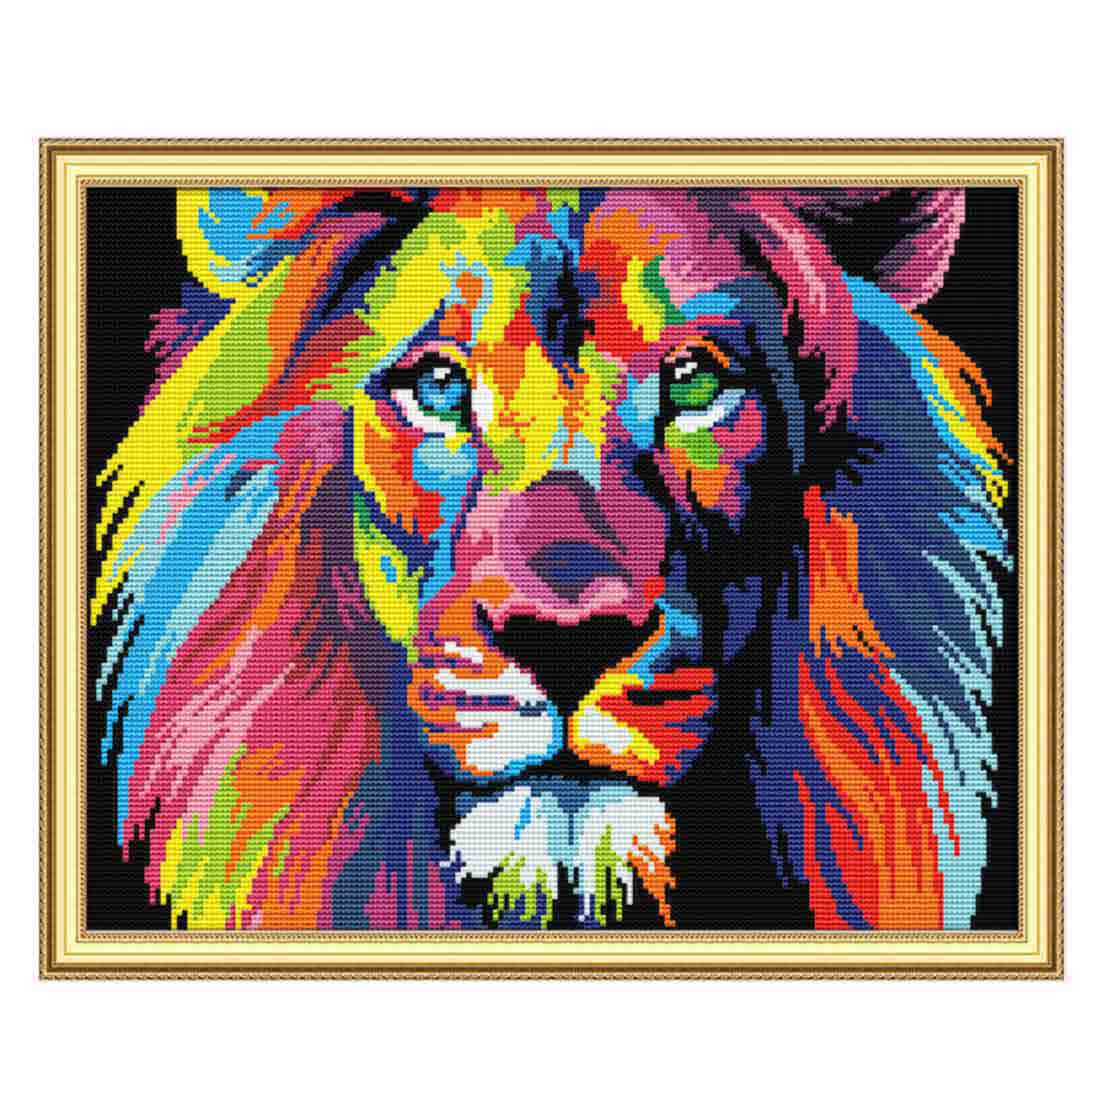 40 X 32cm 14CT 2 Strands Arts Crafts Printing Cross Stitch  DIY Decorative Cross-stitch Embroidery Without Frame Colored Lion